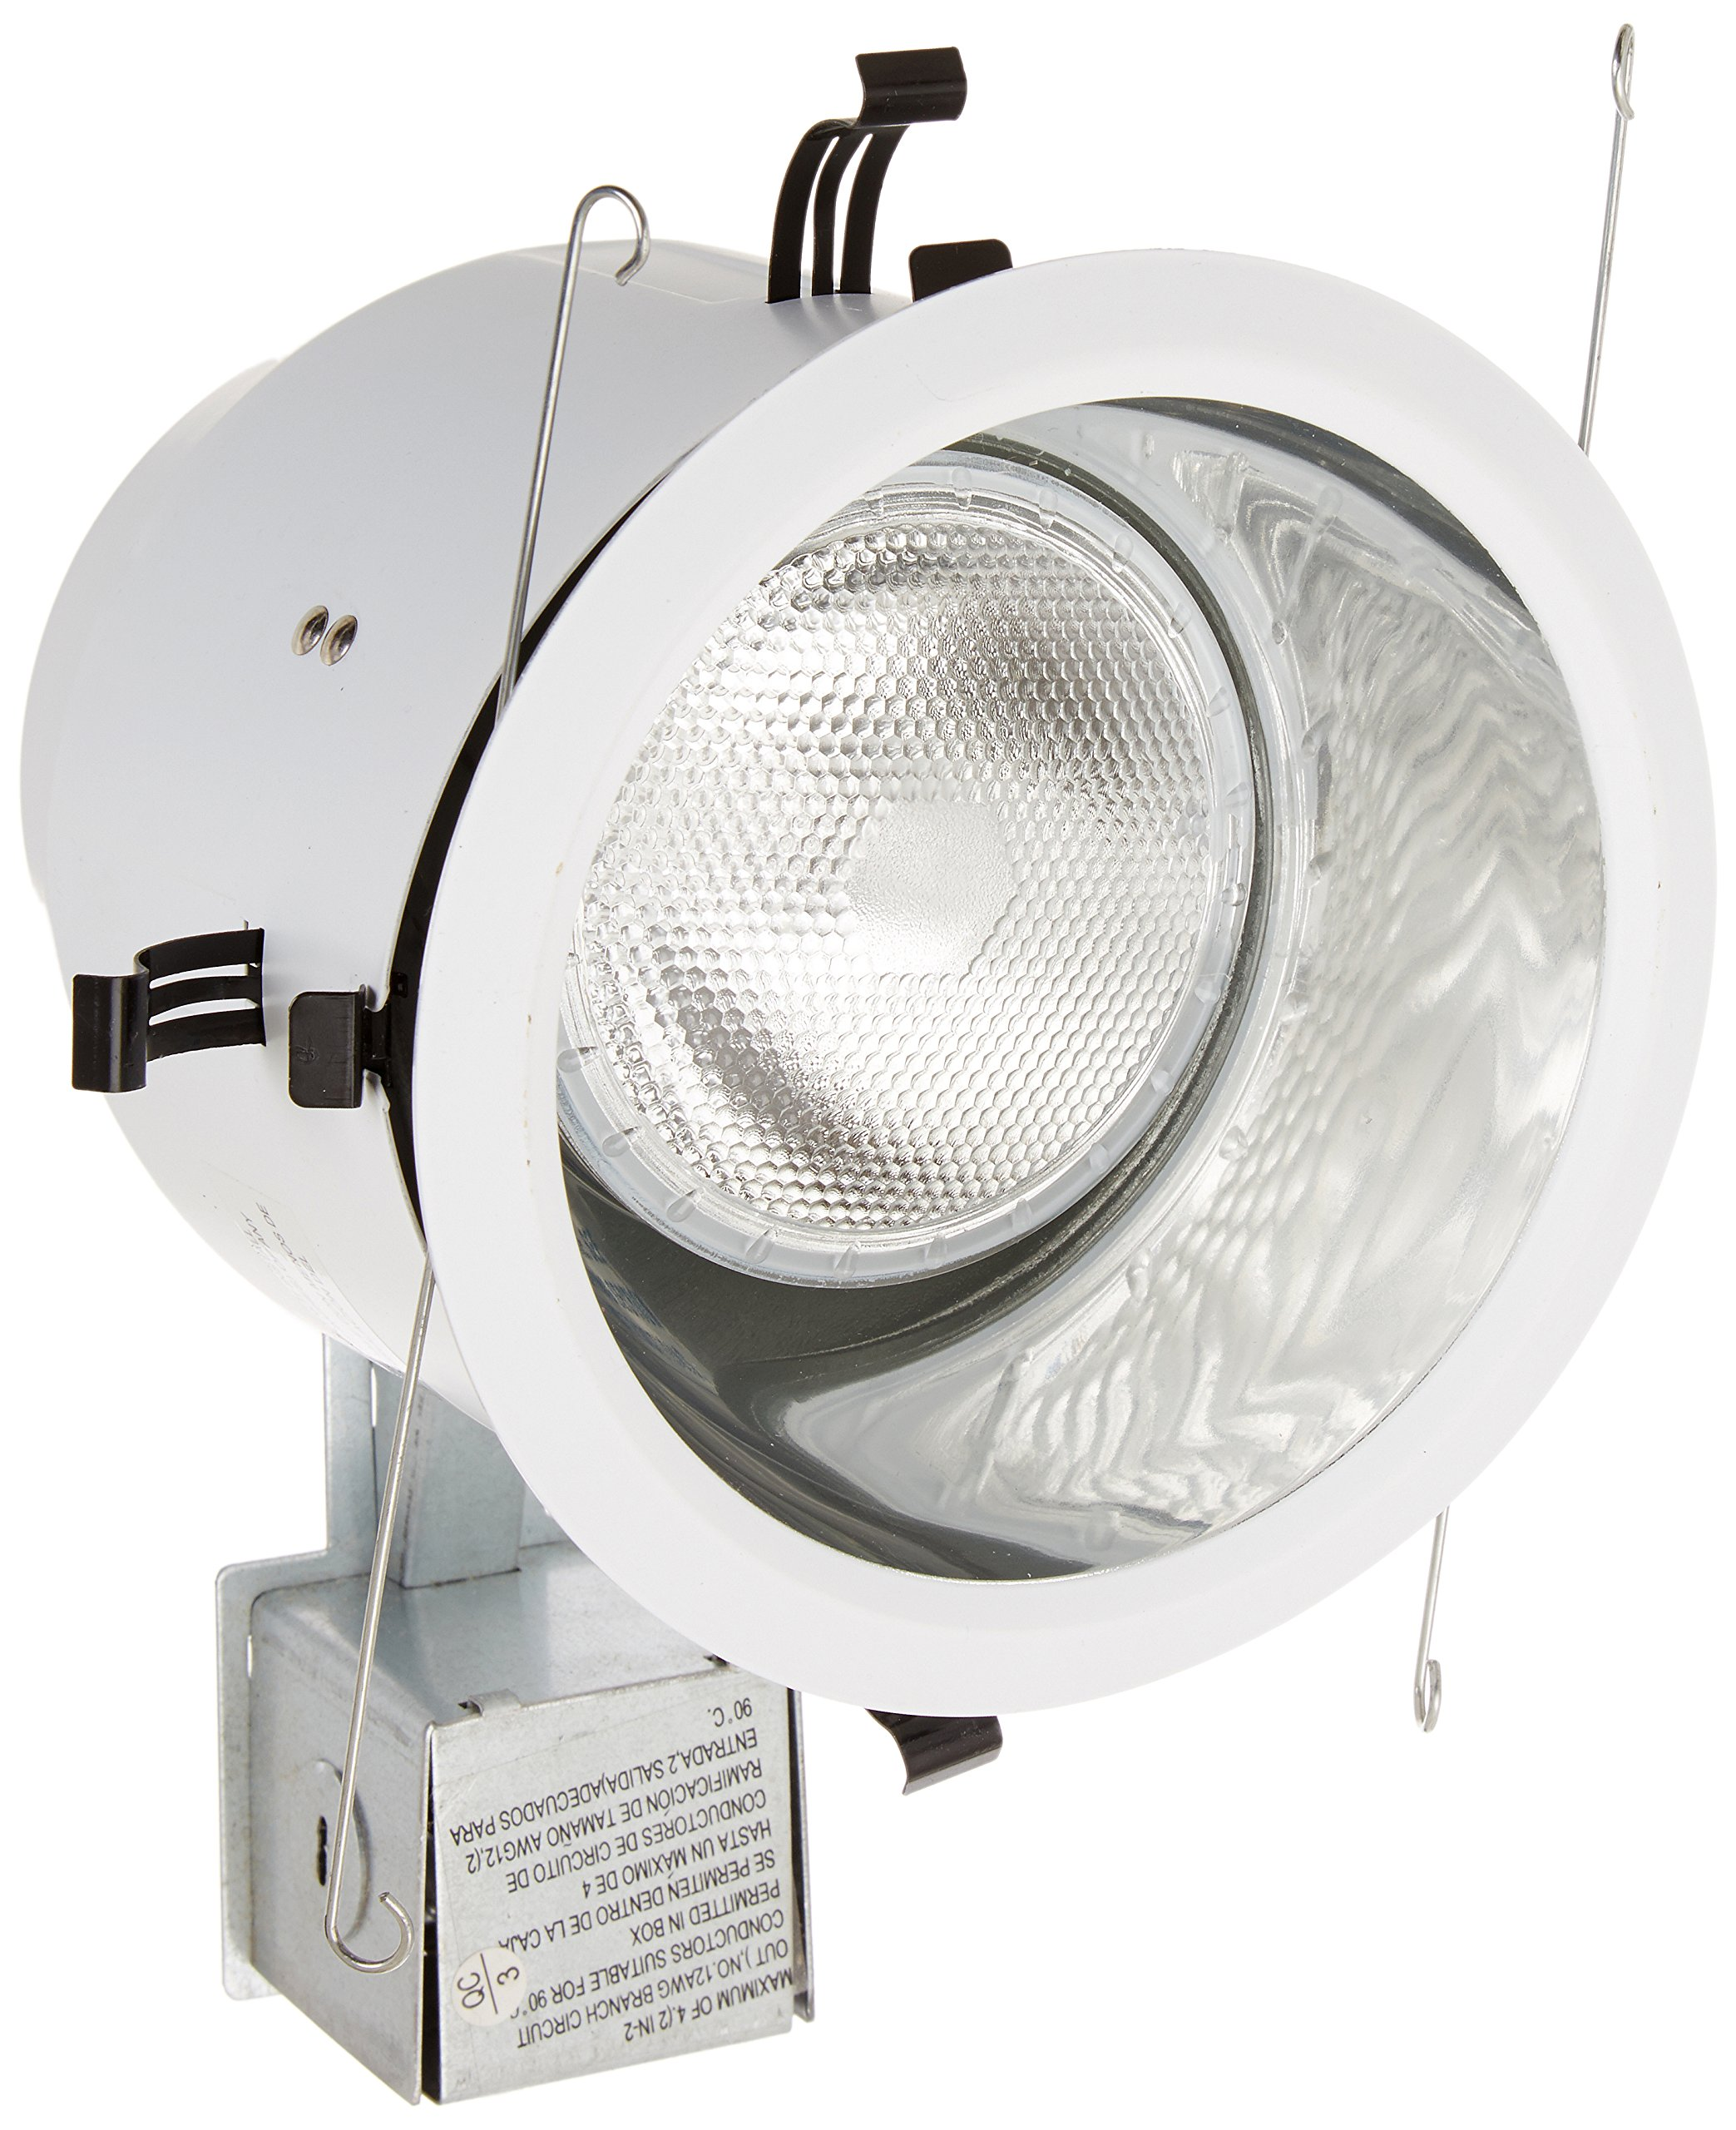 Lithonia Lighting LK5OAZ TRMW M6 Halogen Downlight Kit with Anodized Smooth Trim, 5-Inch, White by Lithonia Lighting (Image #1)